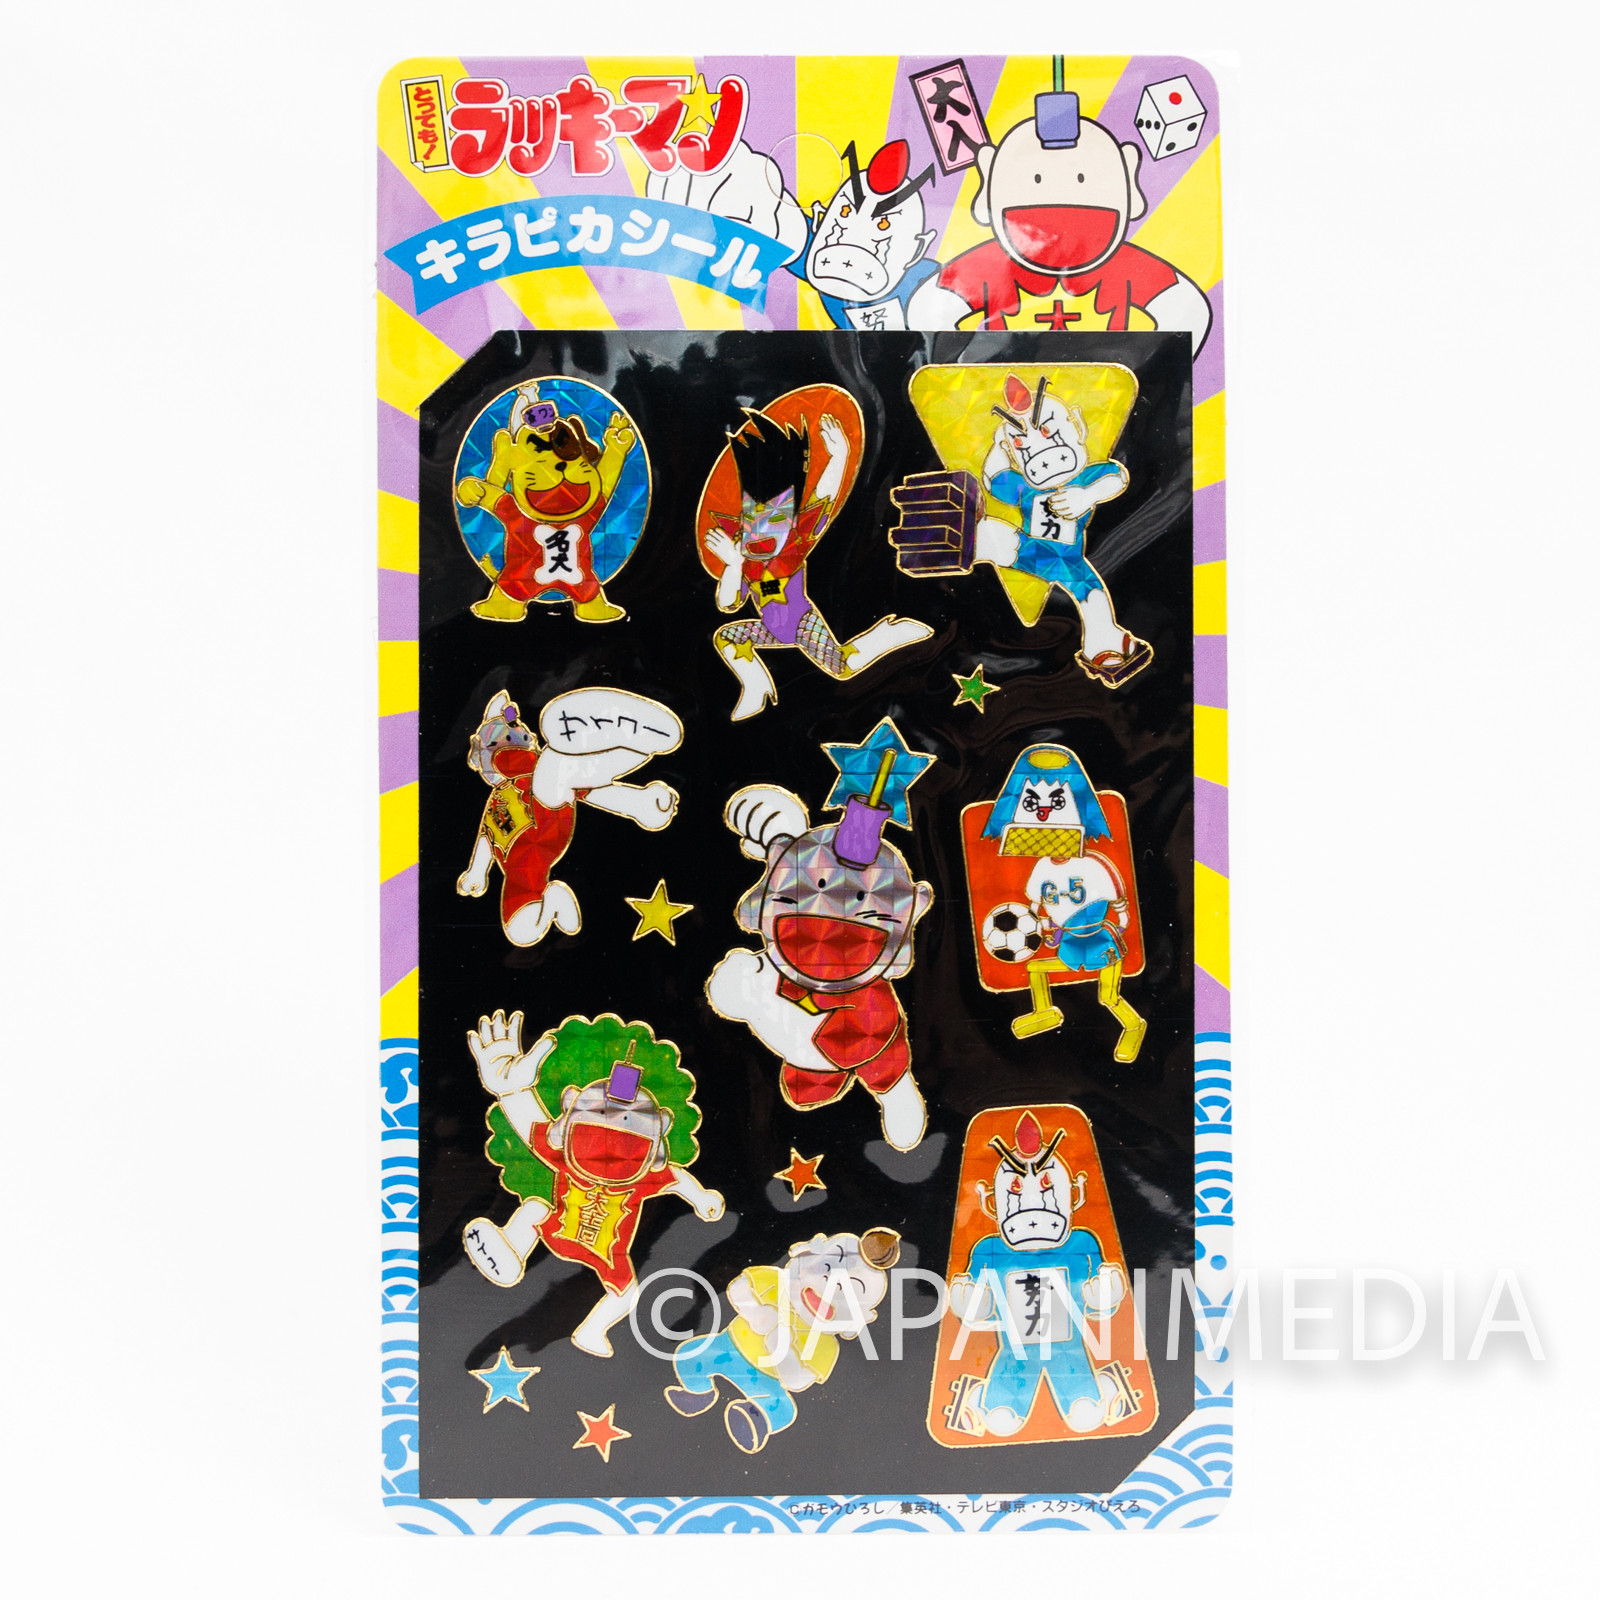 Tottemo Luckyman Sticker Sheet #1 JAPAN ANIME SHONEN JUMP